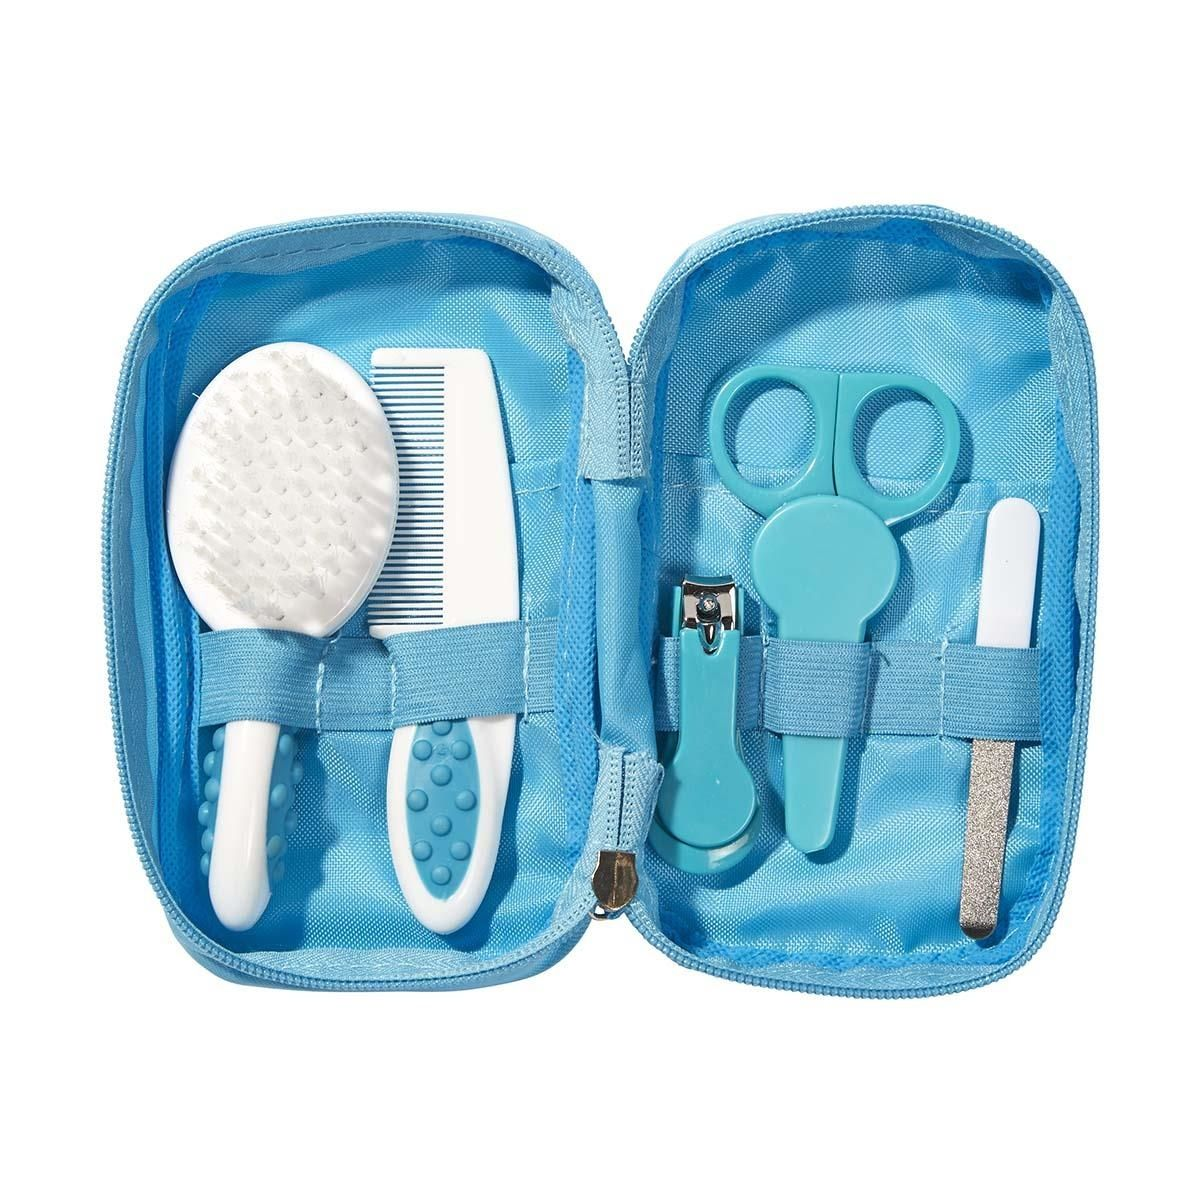 bs Grooming Kit baby Solutions Grooming kit, Baby safety